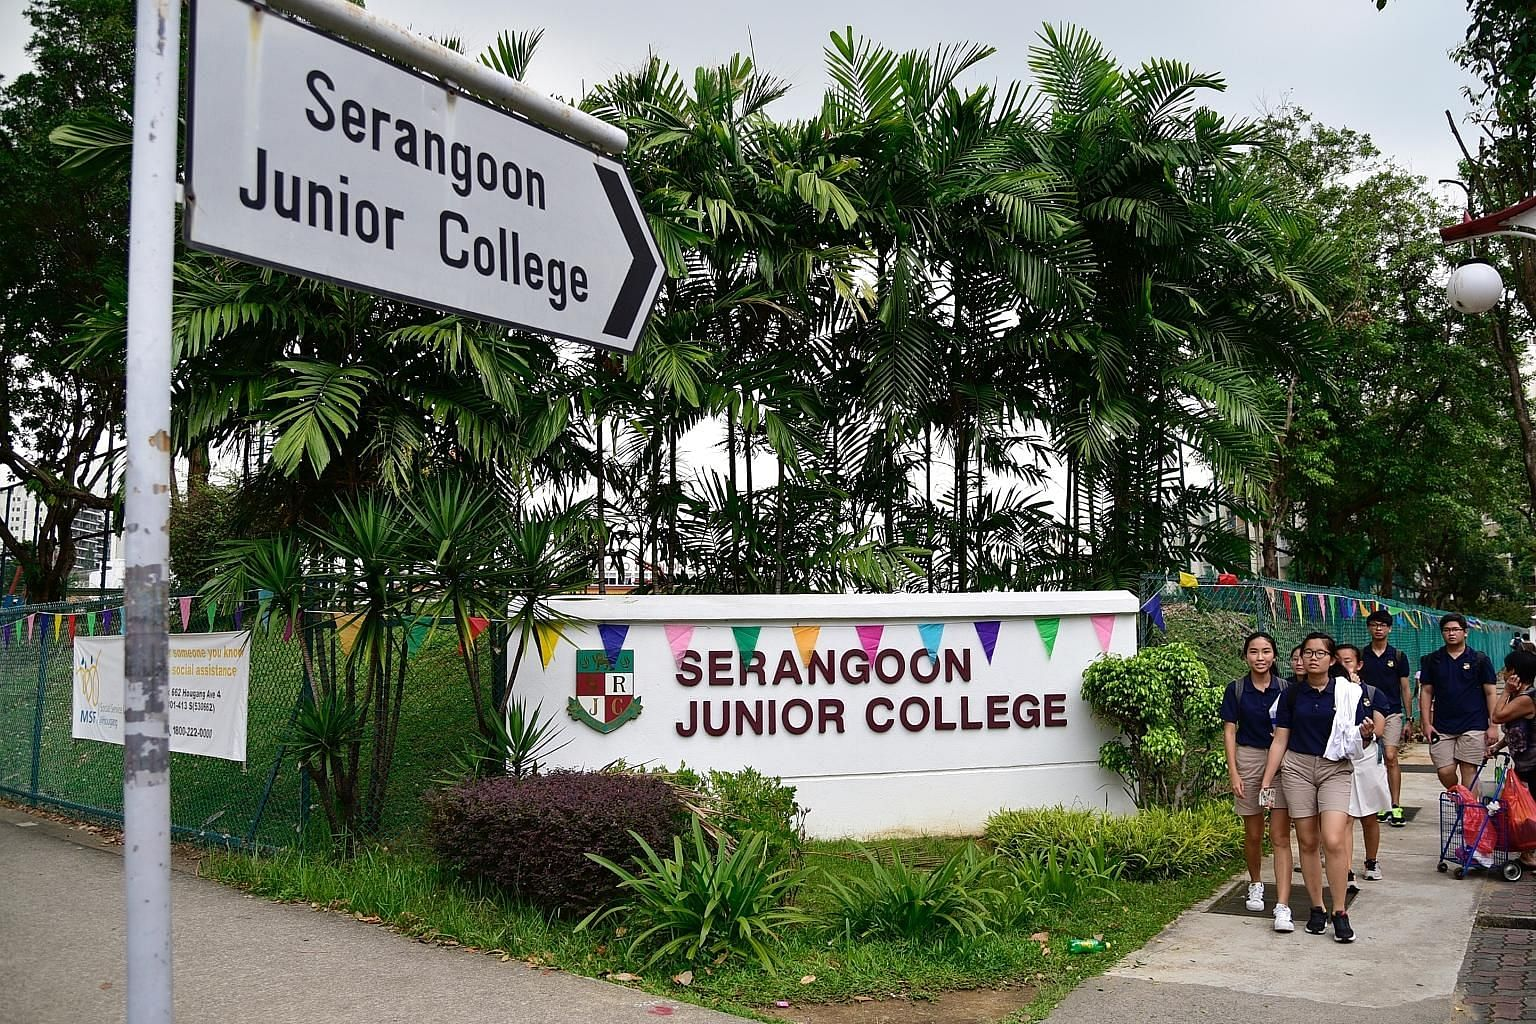 Serangoon Junior College is one of four that will be merged. Serangoon, Tampines, Innova and Jurong JCs will be absorbed by Anderson, Meridian, Yishun and Pioneer respectively, cutting the number of JCs from 23 to 19.